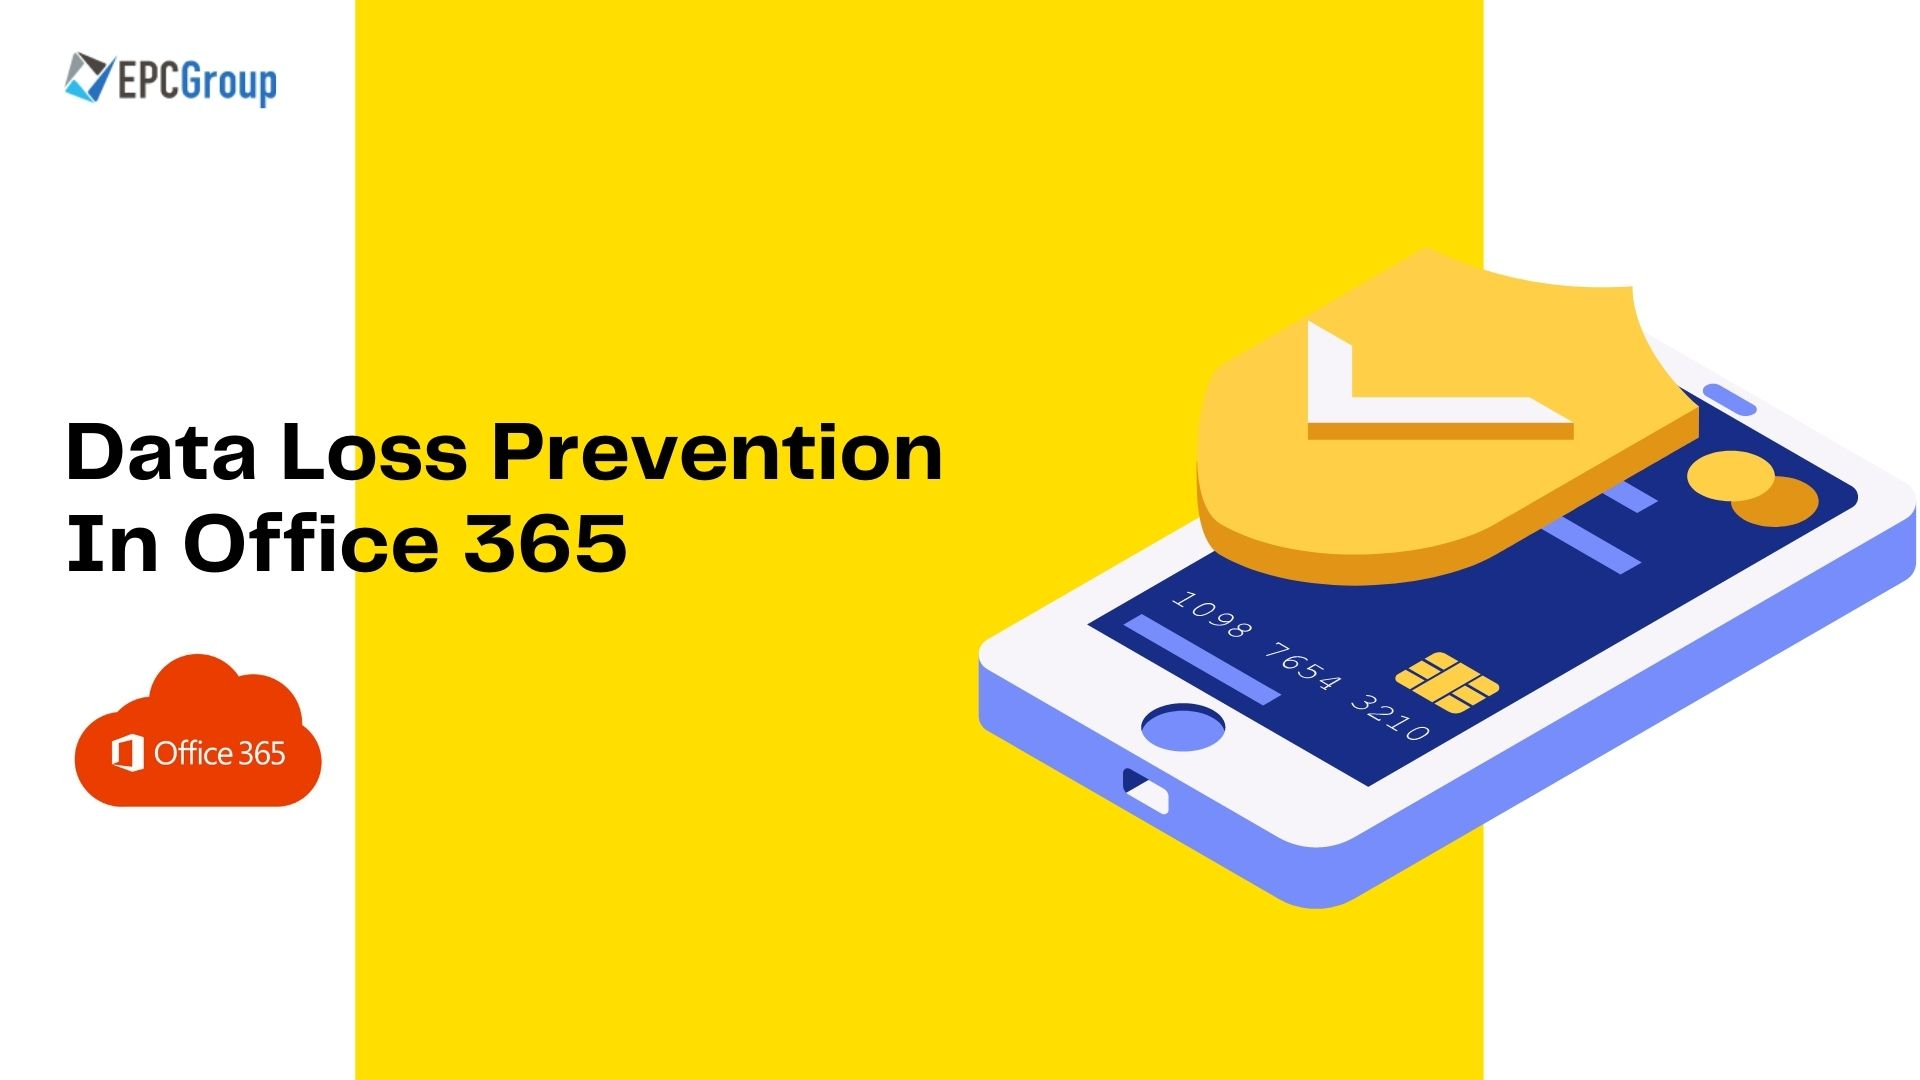 What Is Data Loss Prevention In Office 365 - thumb image